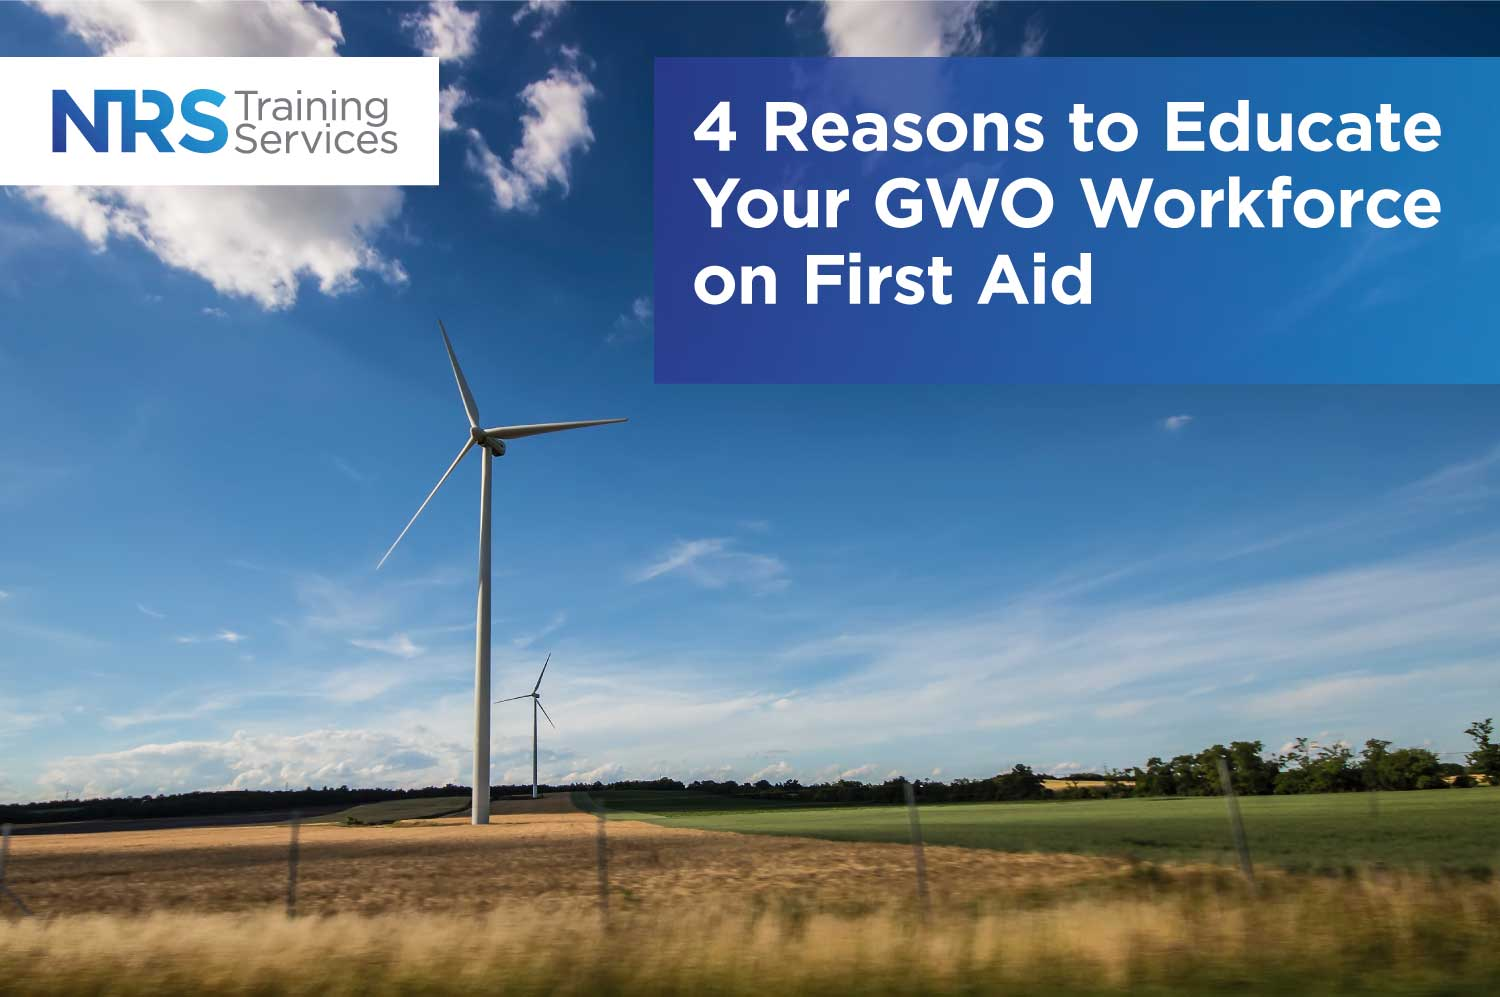 4 Reasons to Educate Your-GWO Workforce on First Aid